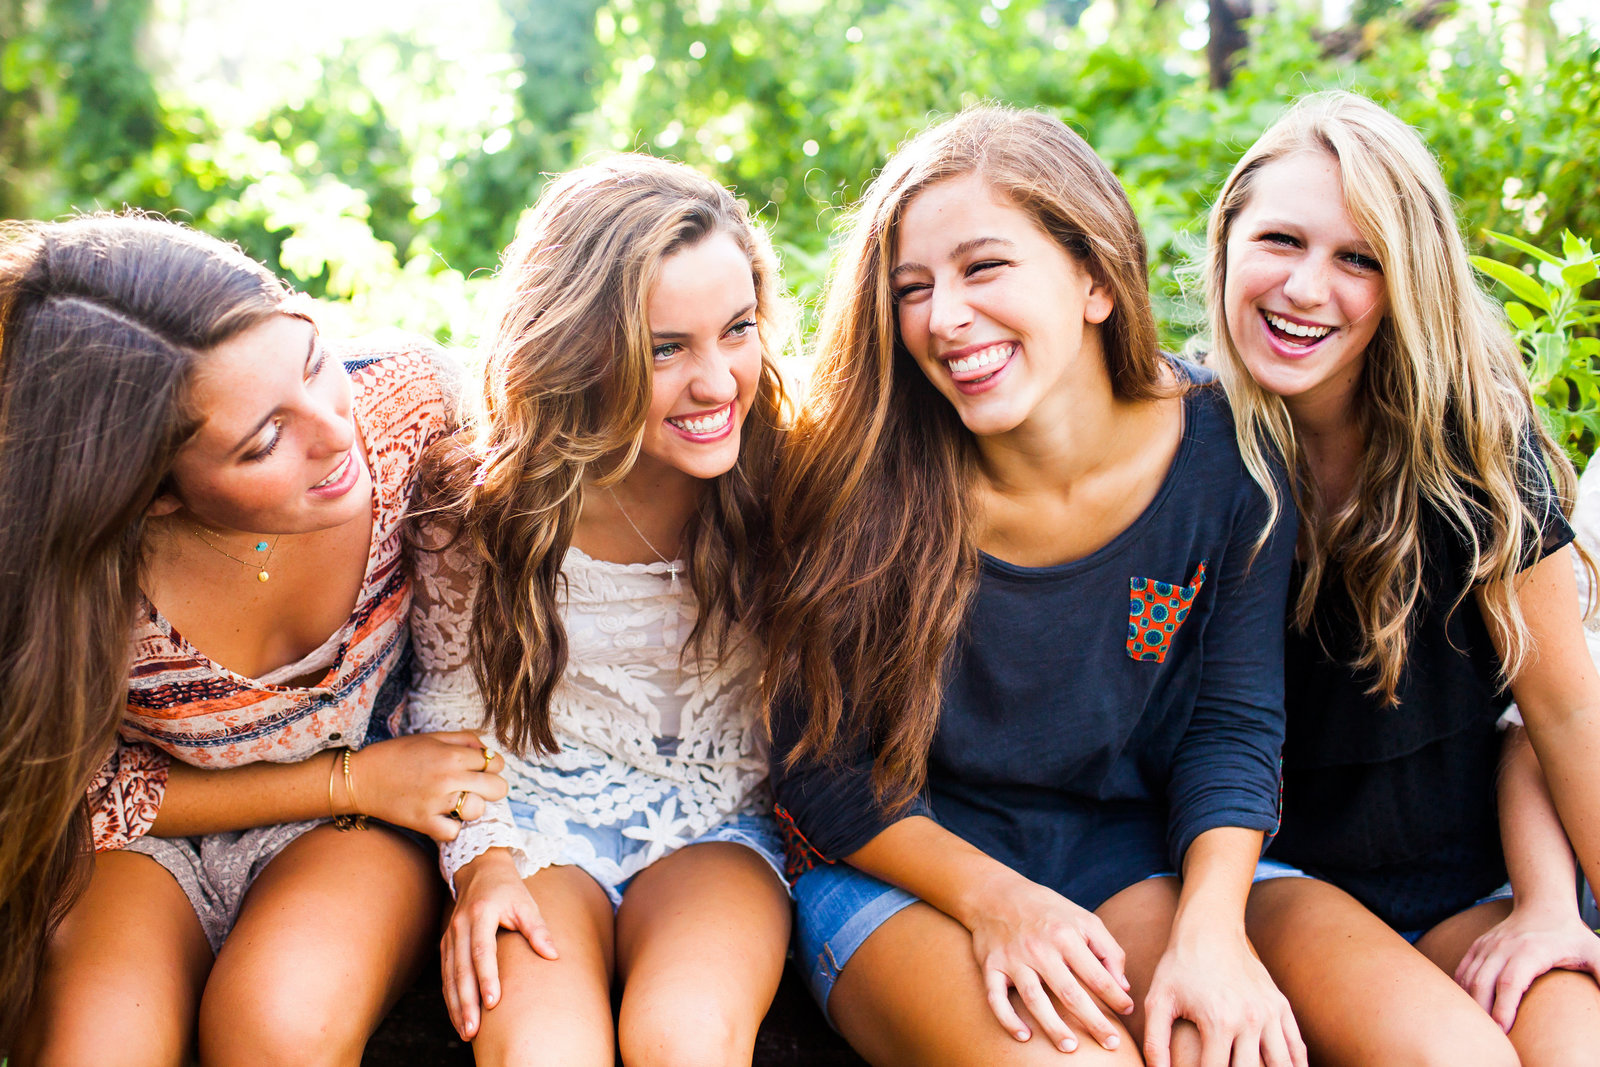 Girls laughing in lush Florida setting